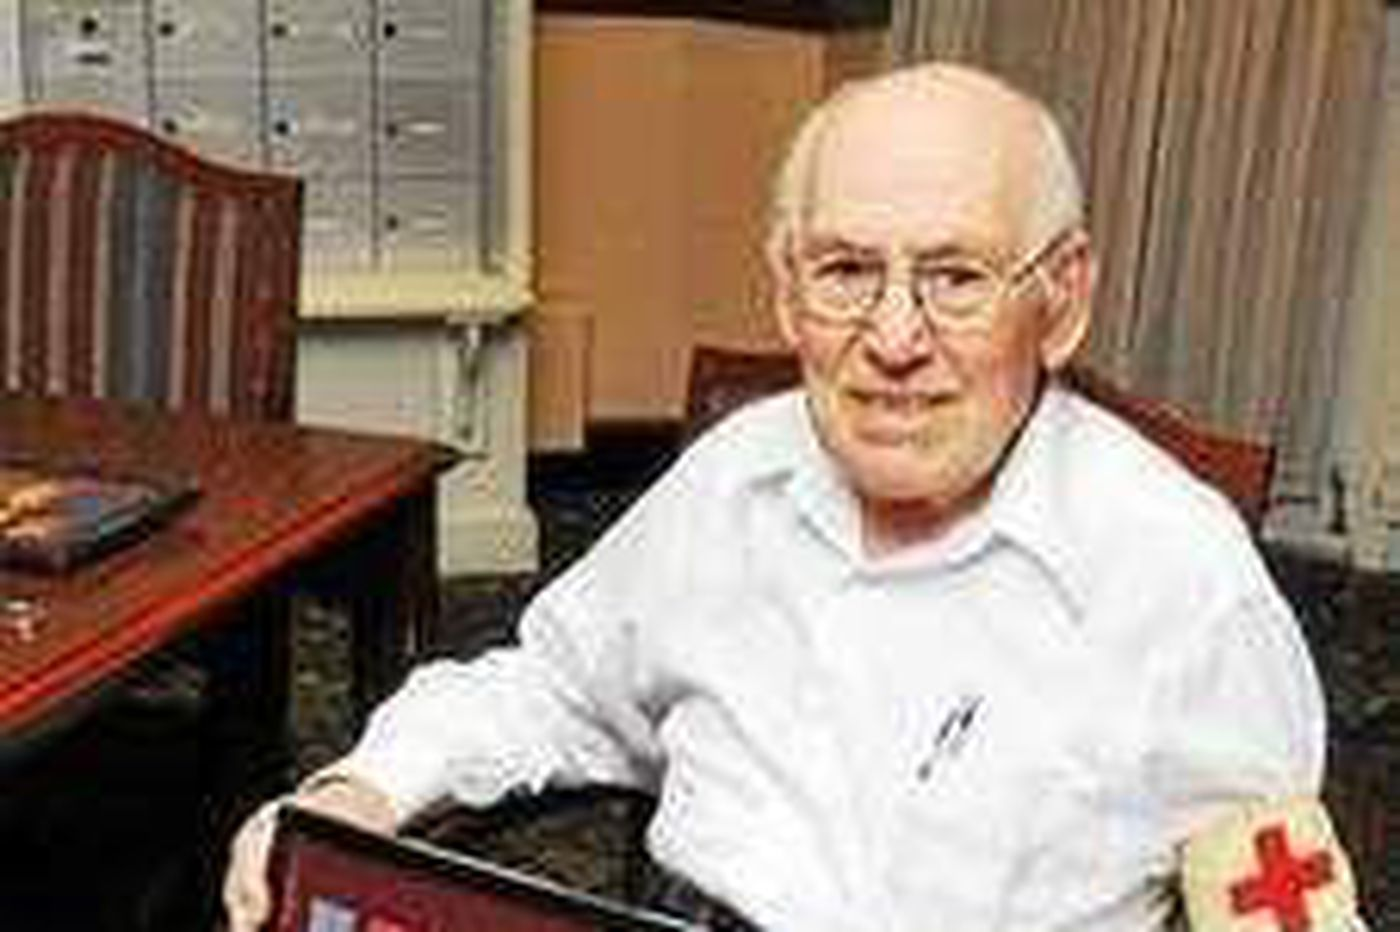 Frank L. Miller, 104, decorated World War II Army surgeon and family doctor